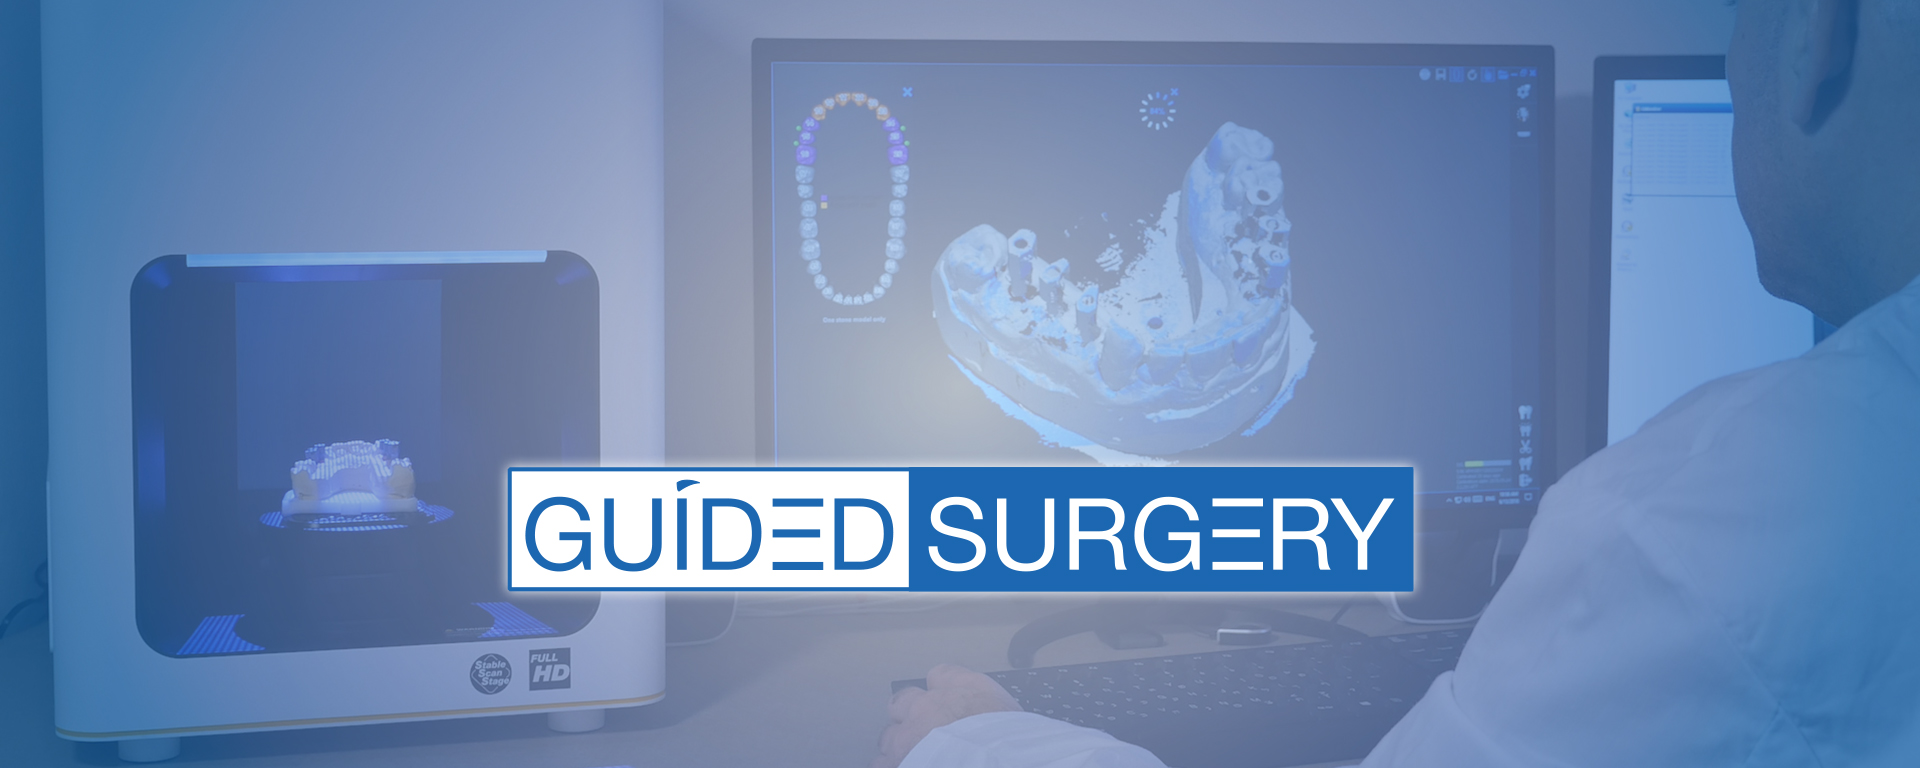 Guided Surgery by Cortex